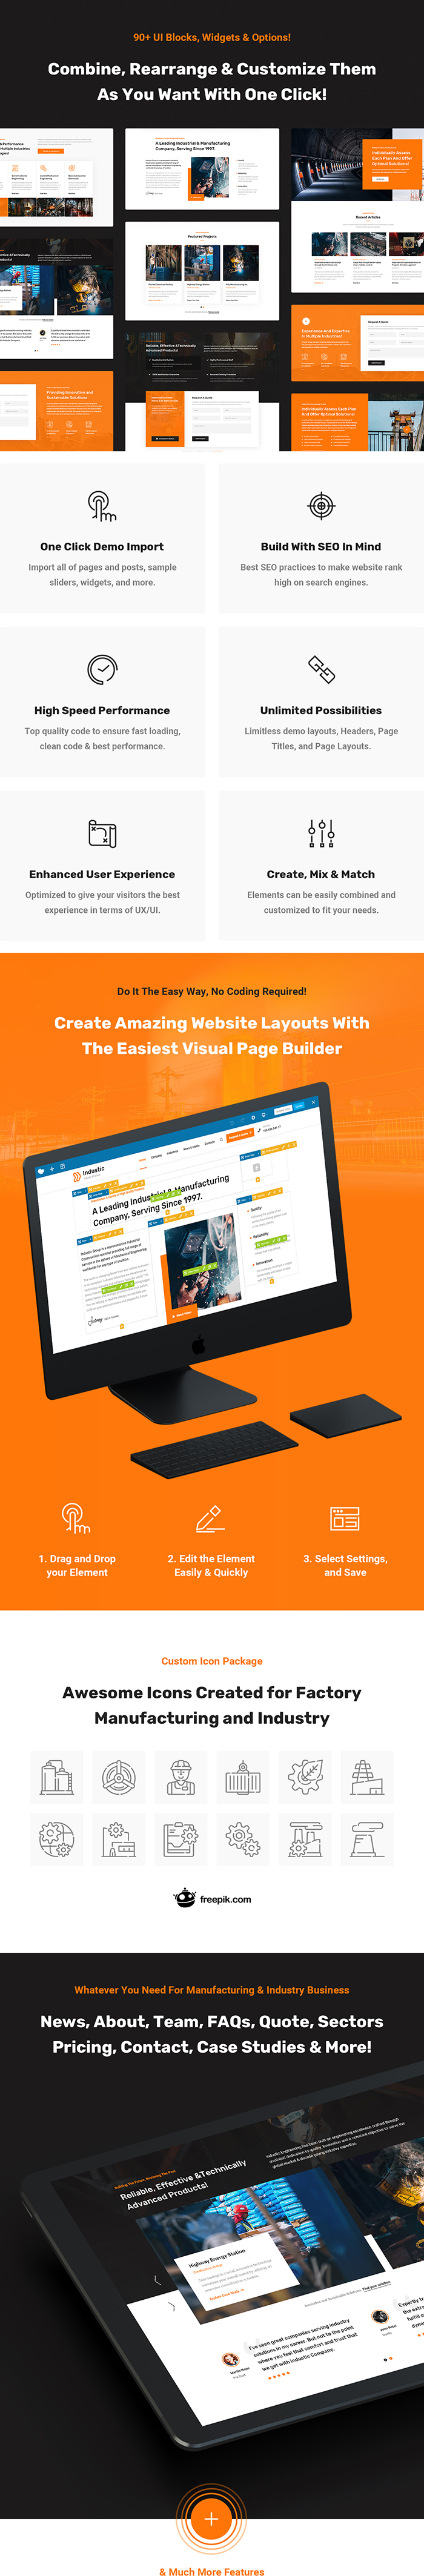 Industic - Industry and Manufacturing WordPress Theme - 4